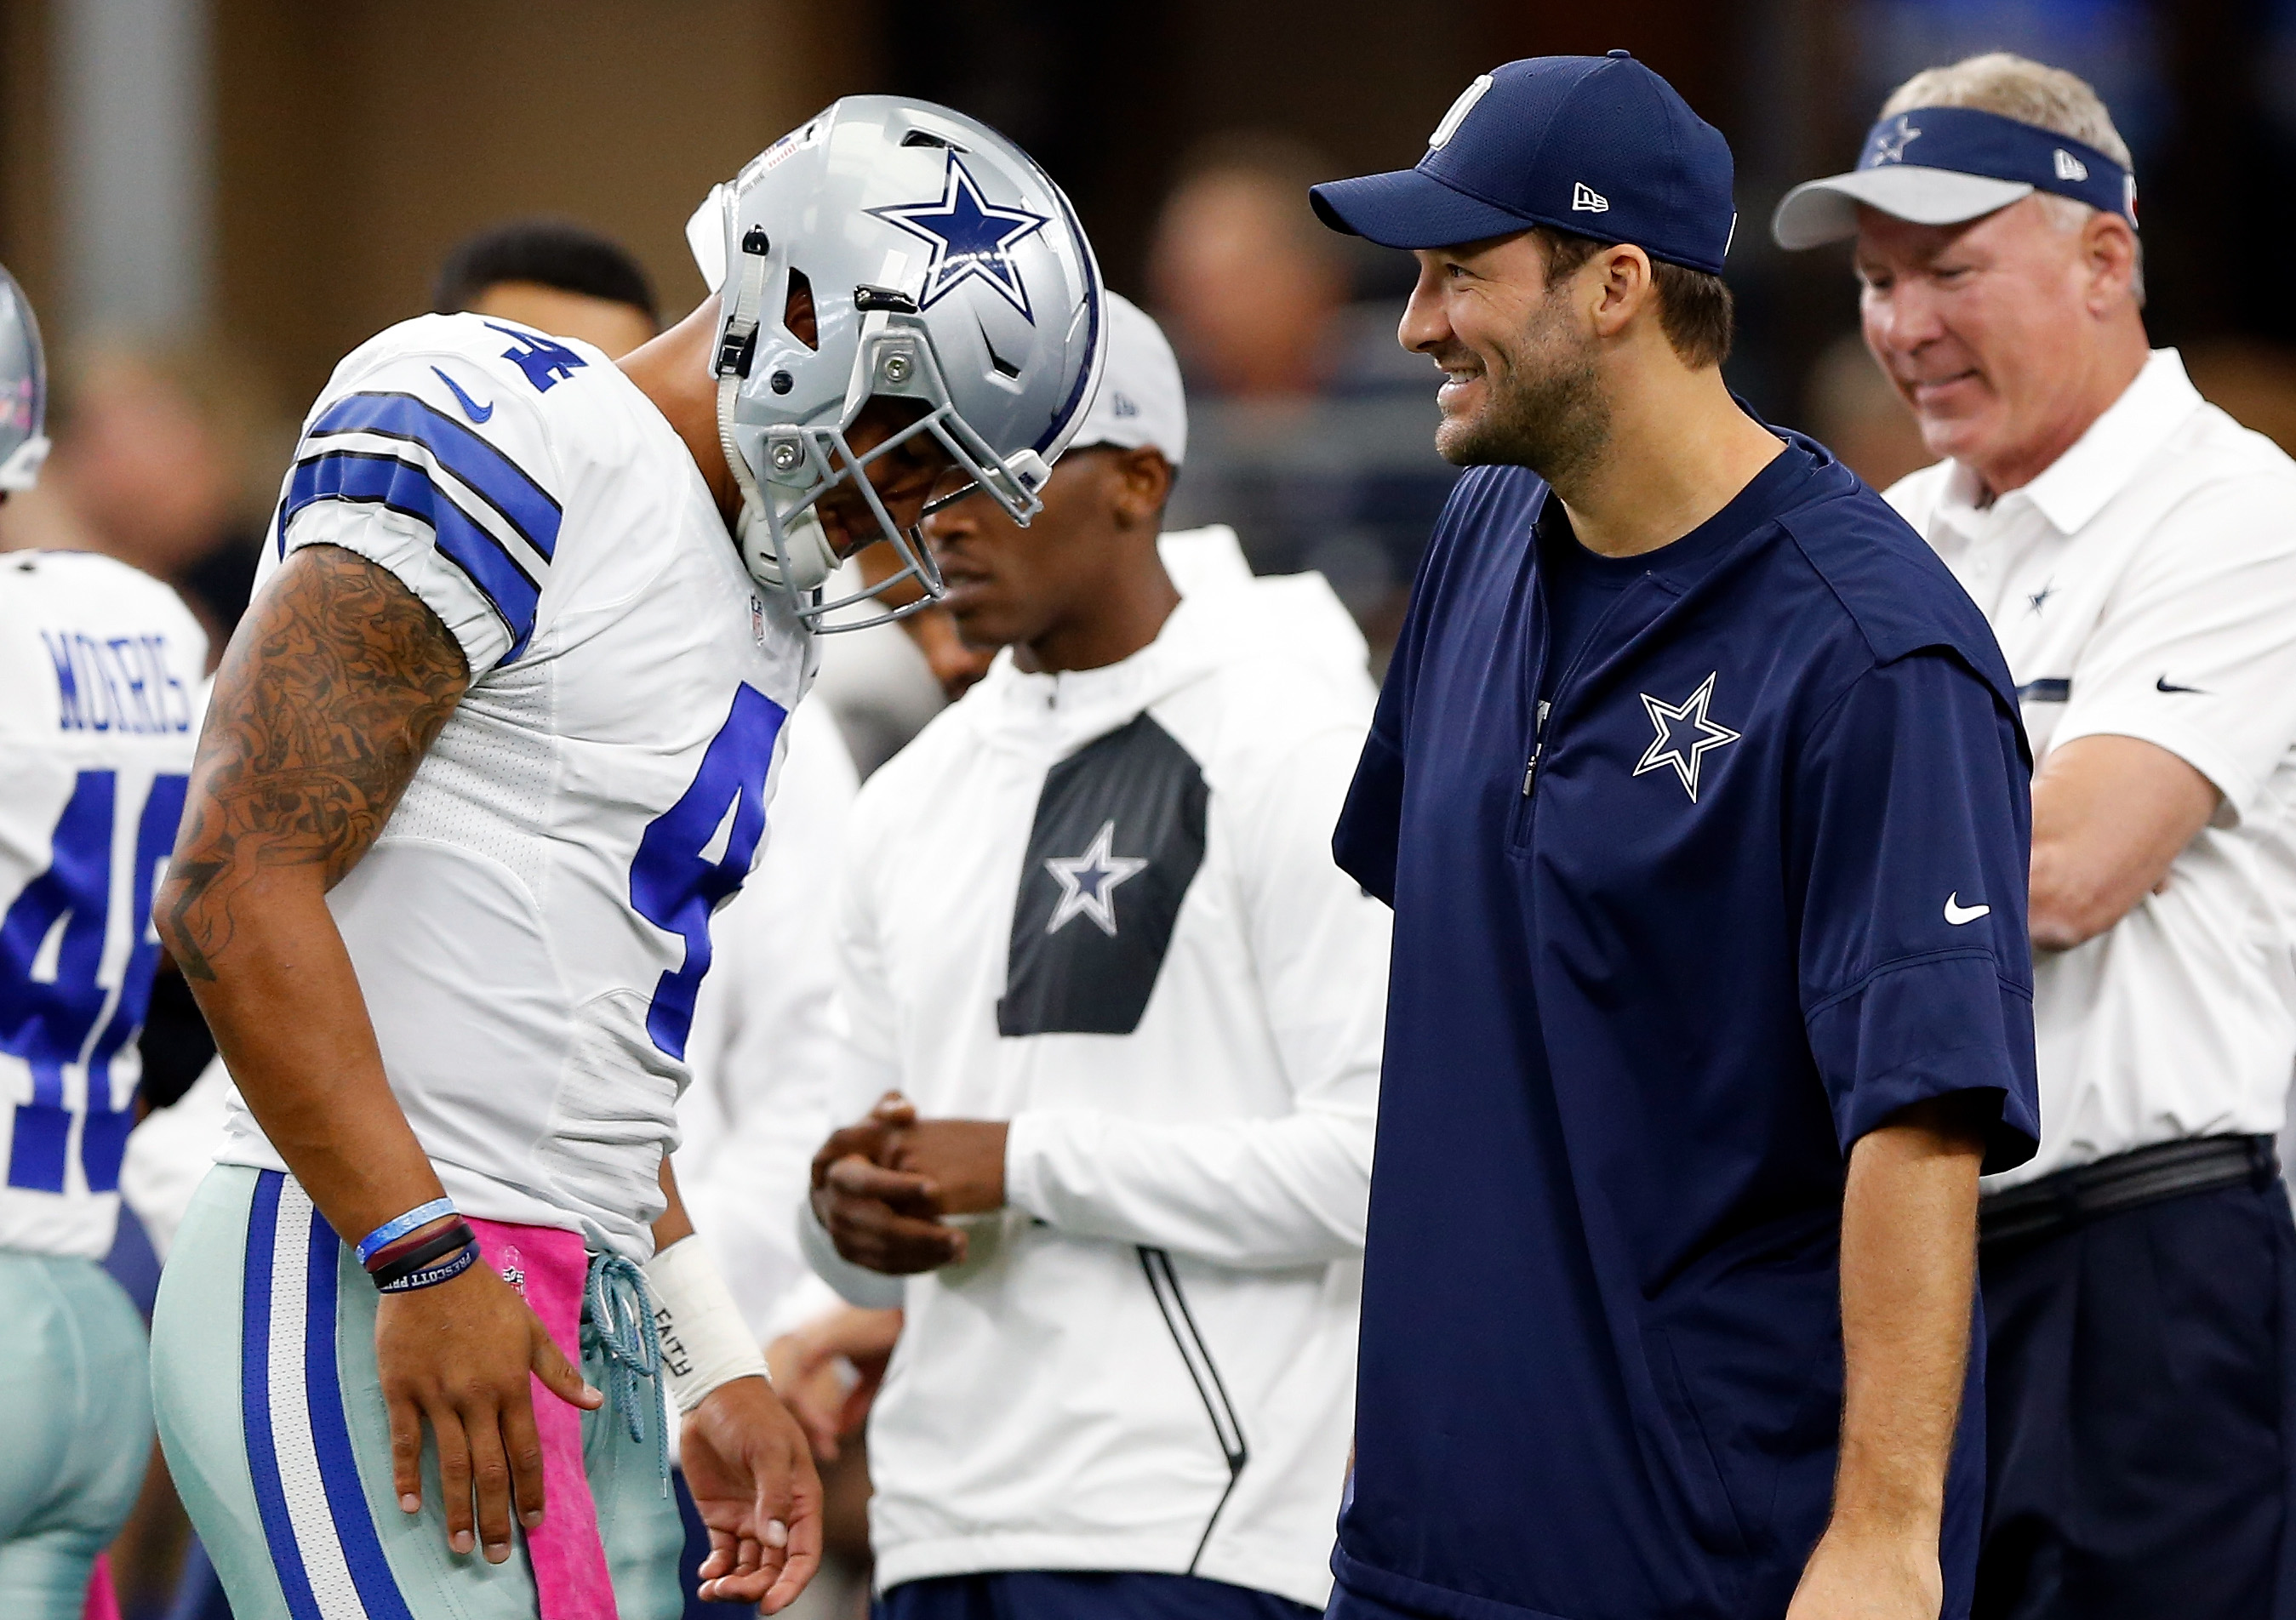 Cowboys Dak Prescott and Tony Romo